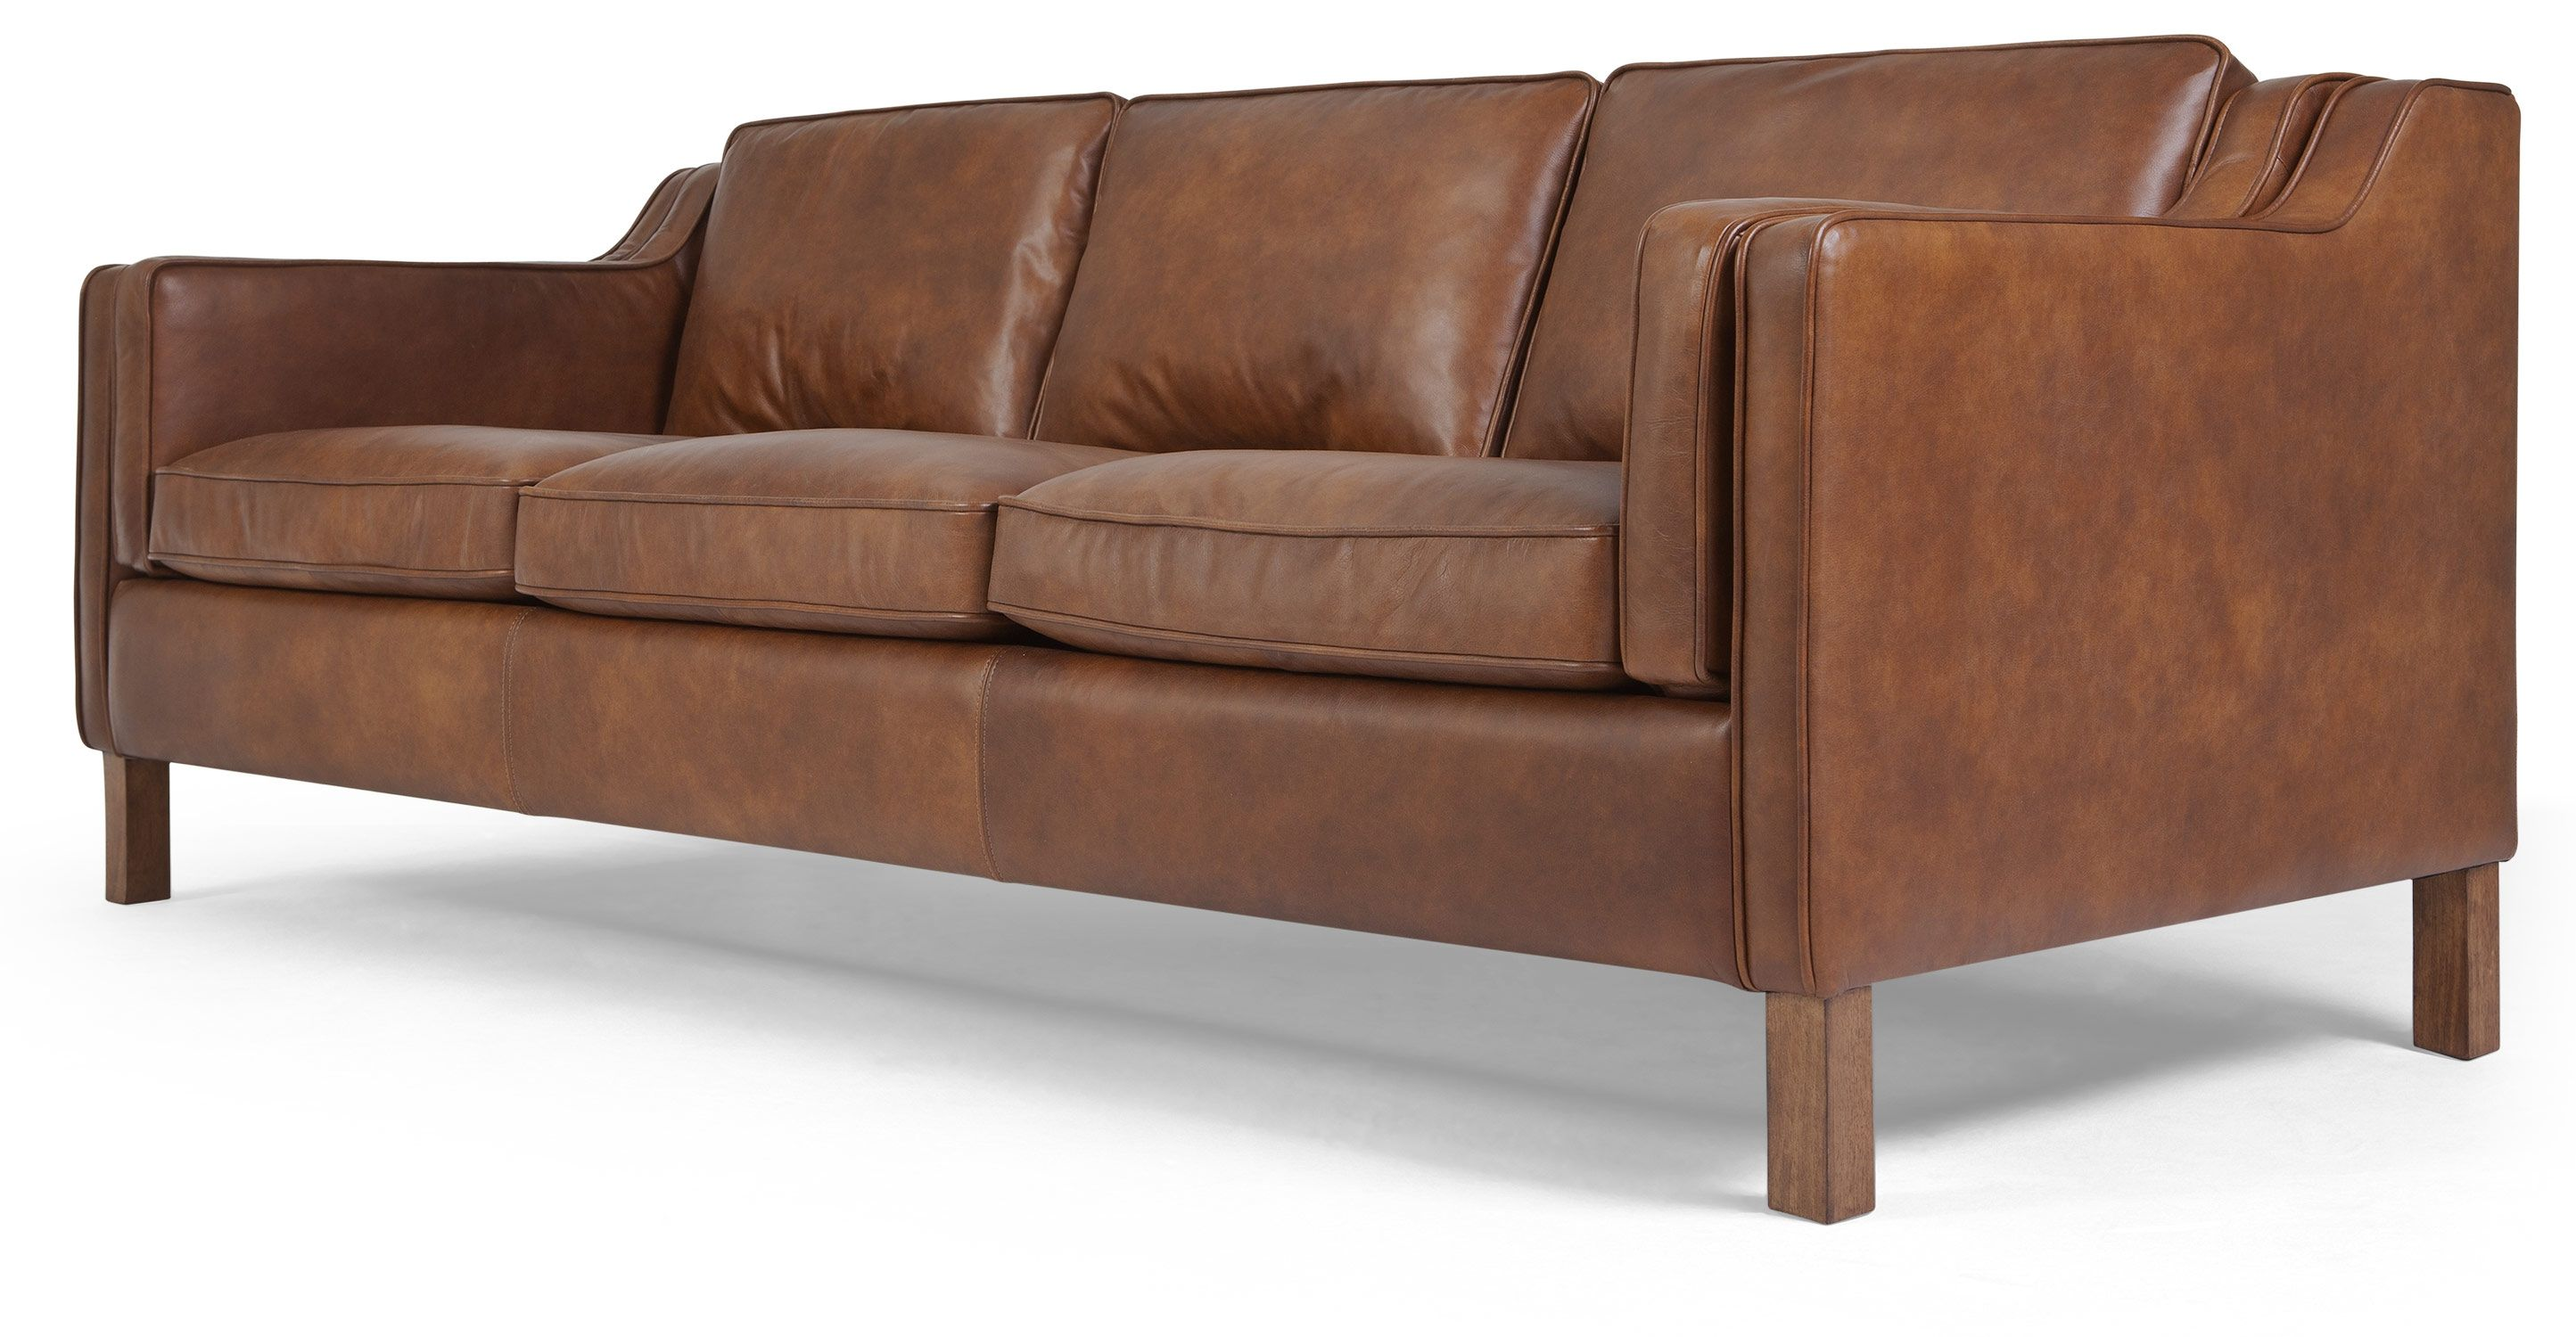 nice Tan Leather Sofa Lovely Tan Leather Sofa 43 Contemporary